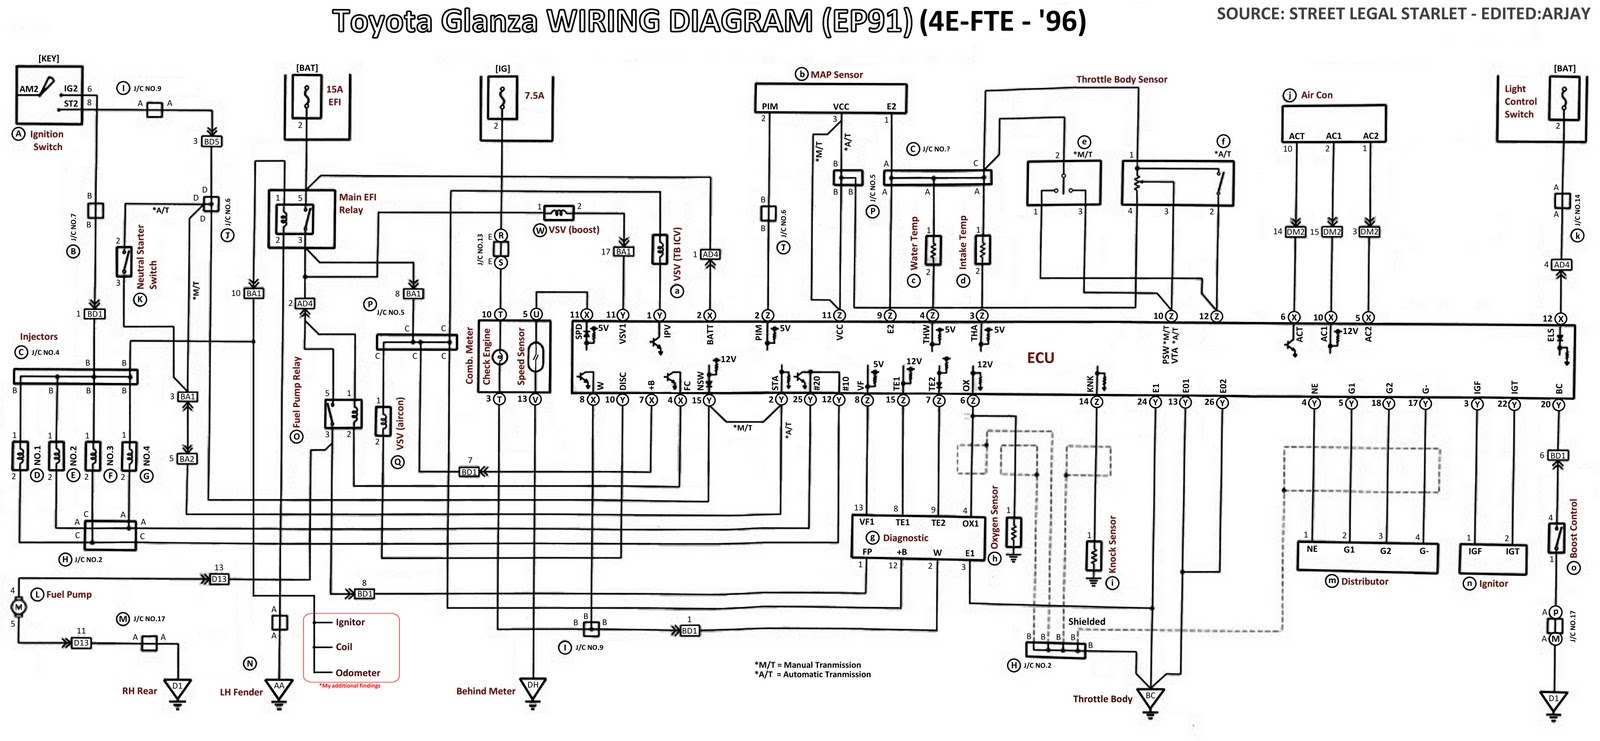 ... wiring loom which would also prevent the car from starting or running  properly. I have marked some of these in my modified wiring diagram below.